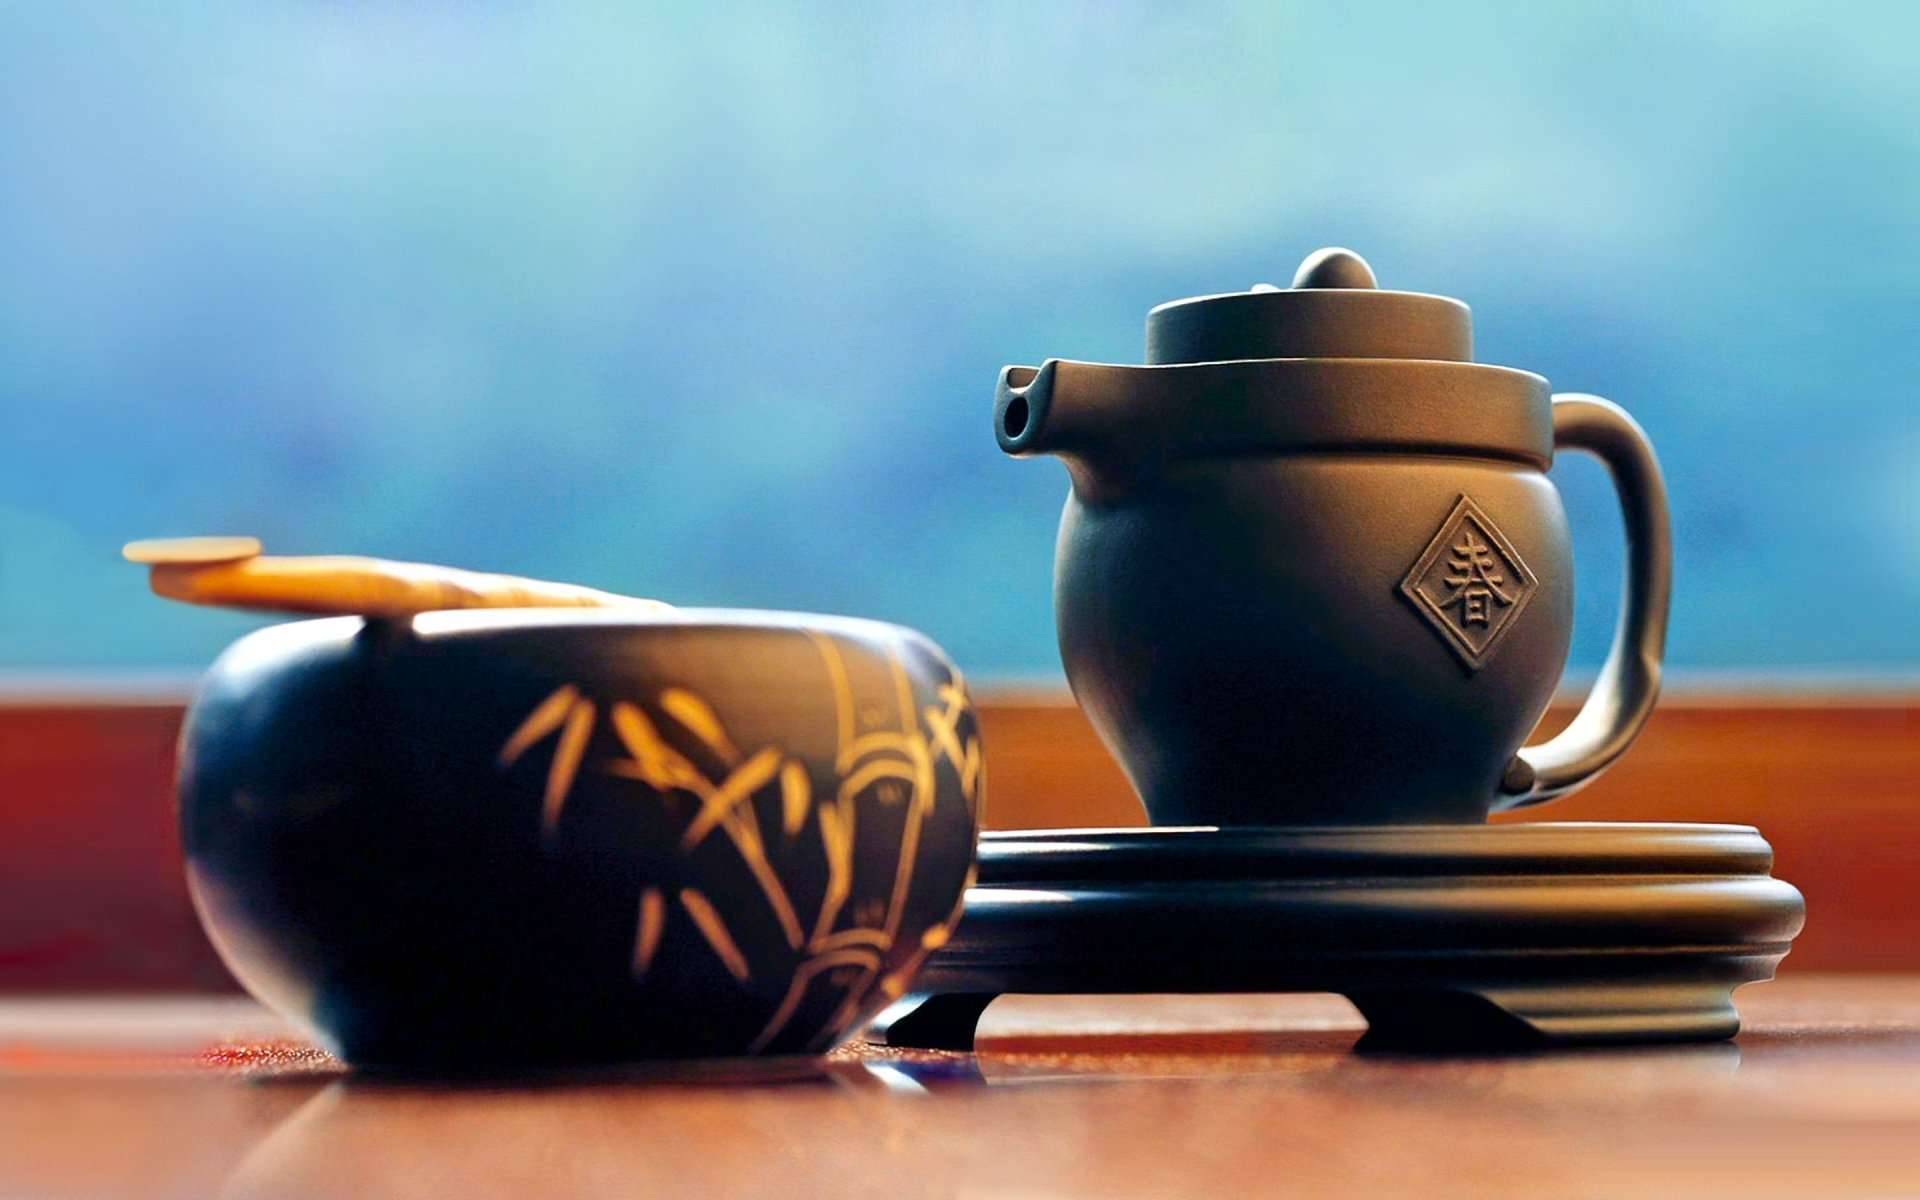 Food - Tea  Zen Asian Oriental Drink Wallpaper